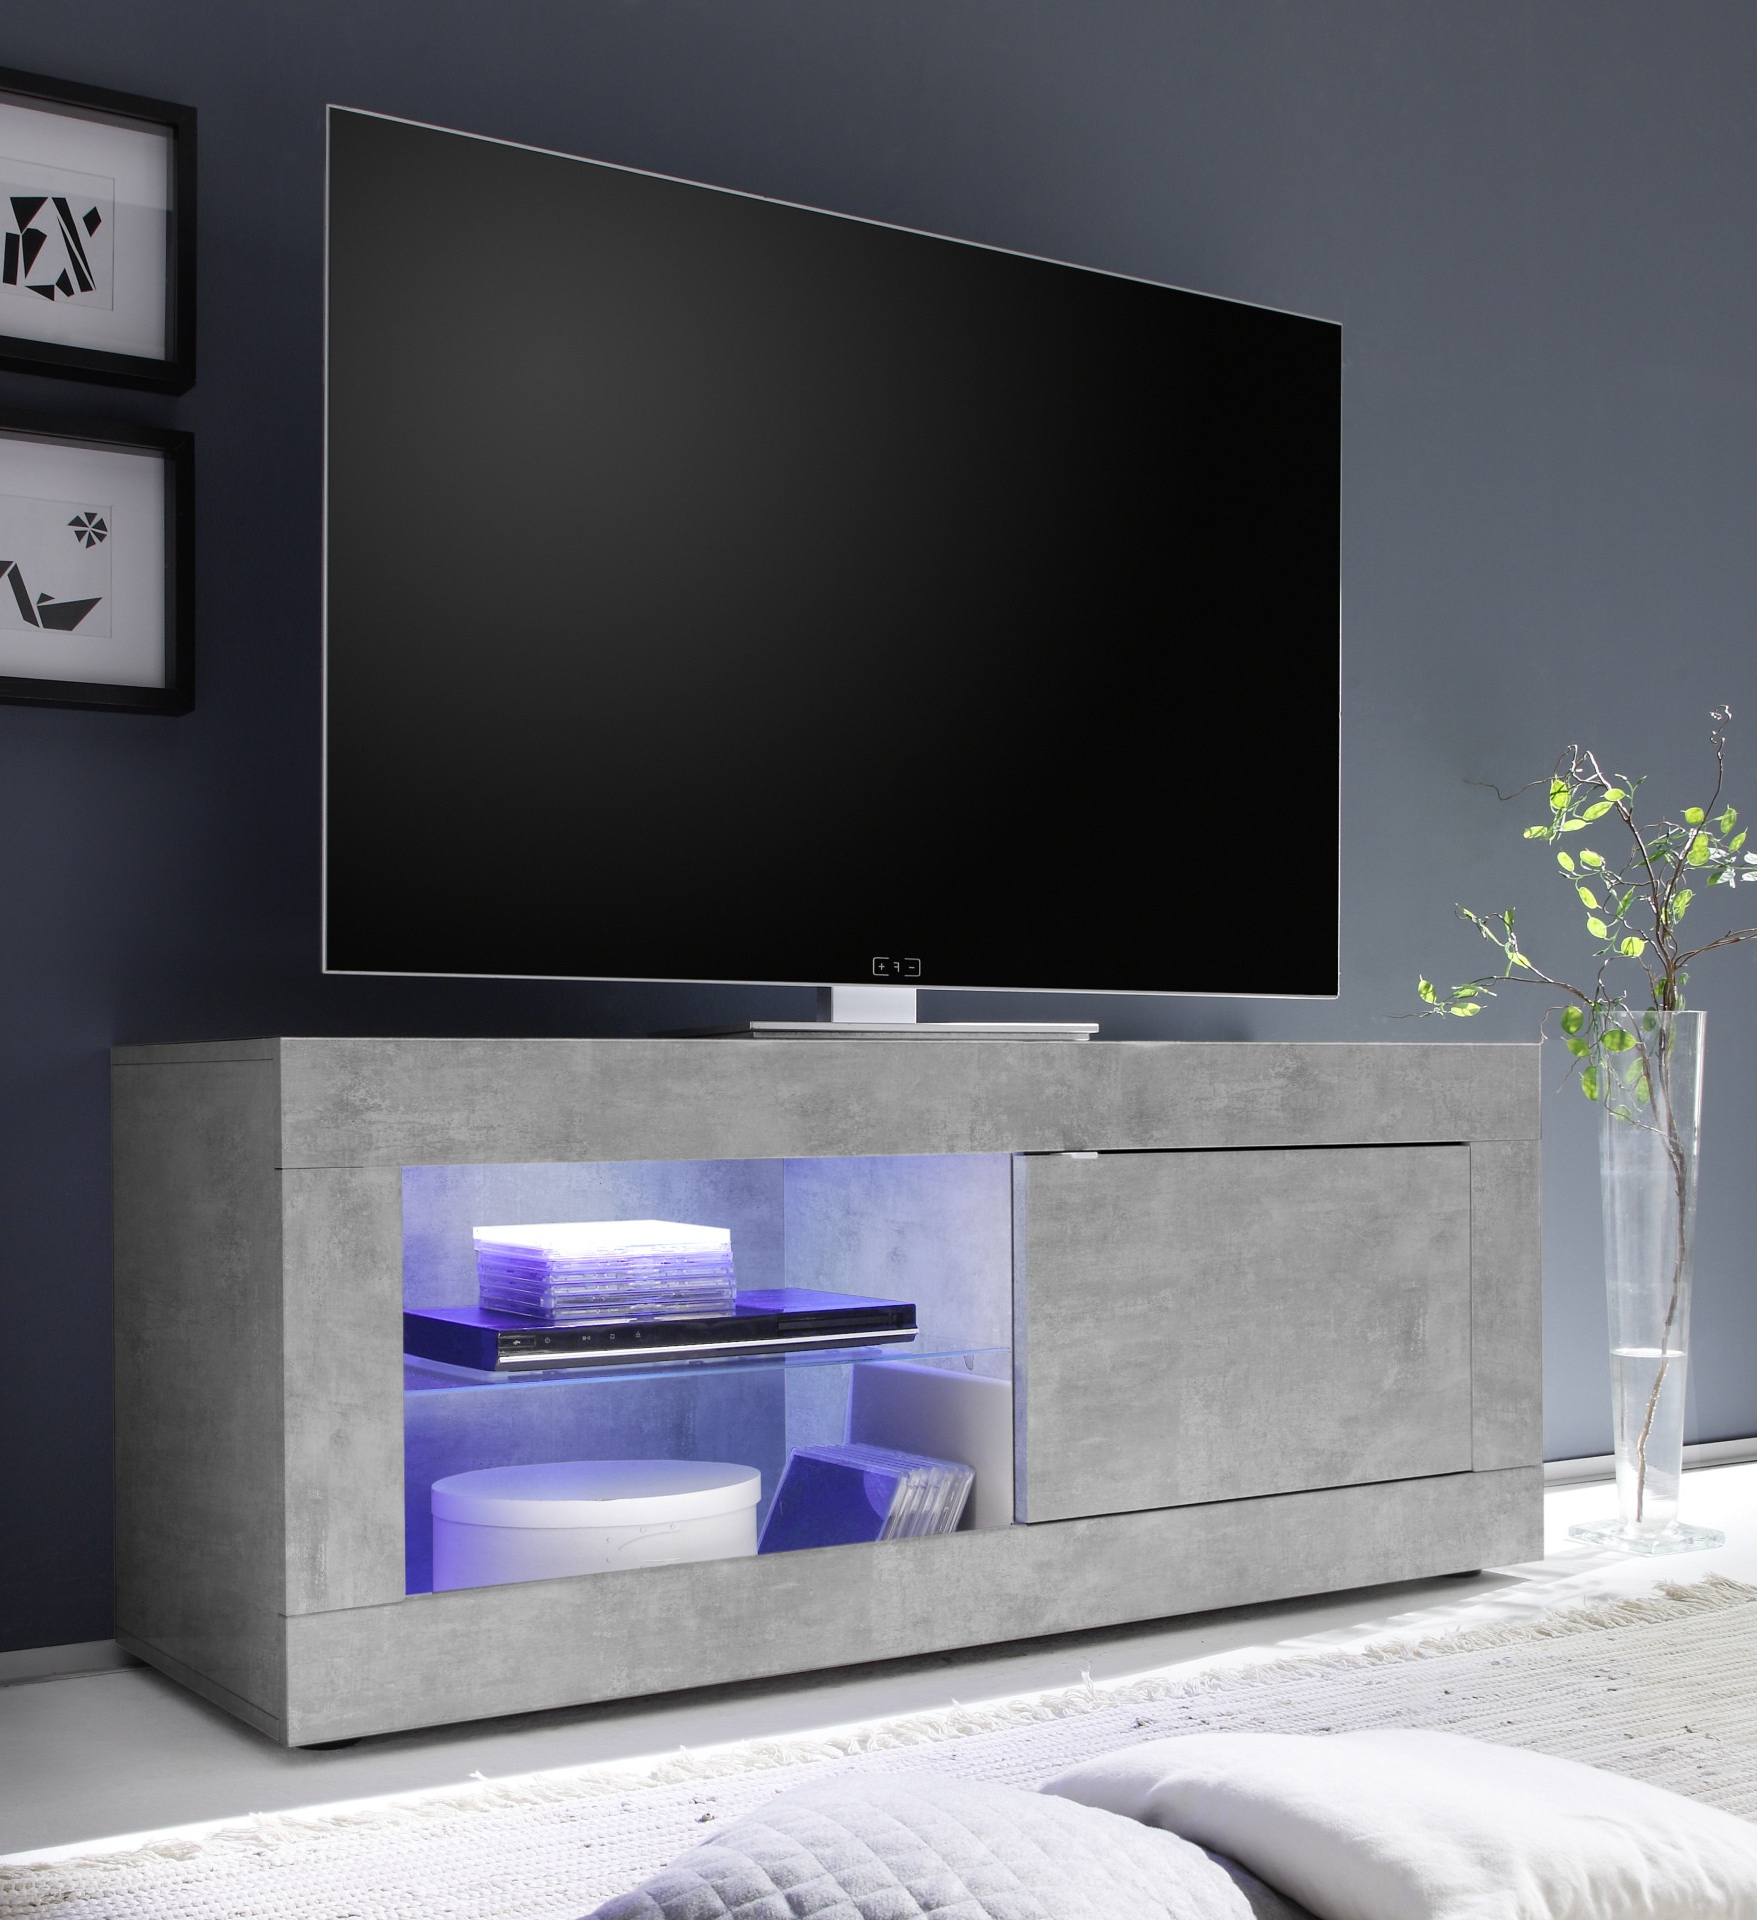 Dolcevita Concrete Finish Small Tv Stand – Tv Stands (4144 Throughout 2017 Tv Stands (View 11 of 16)